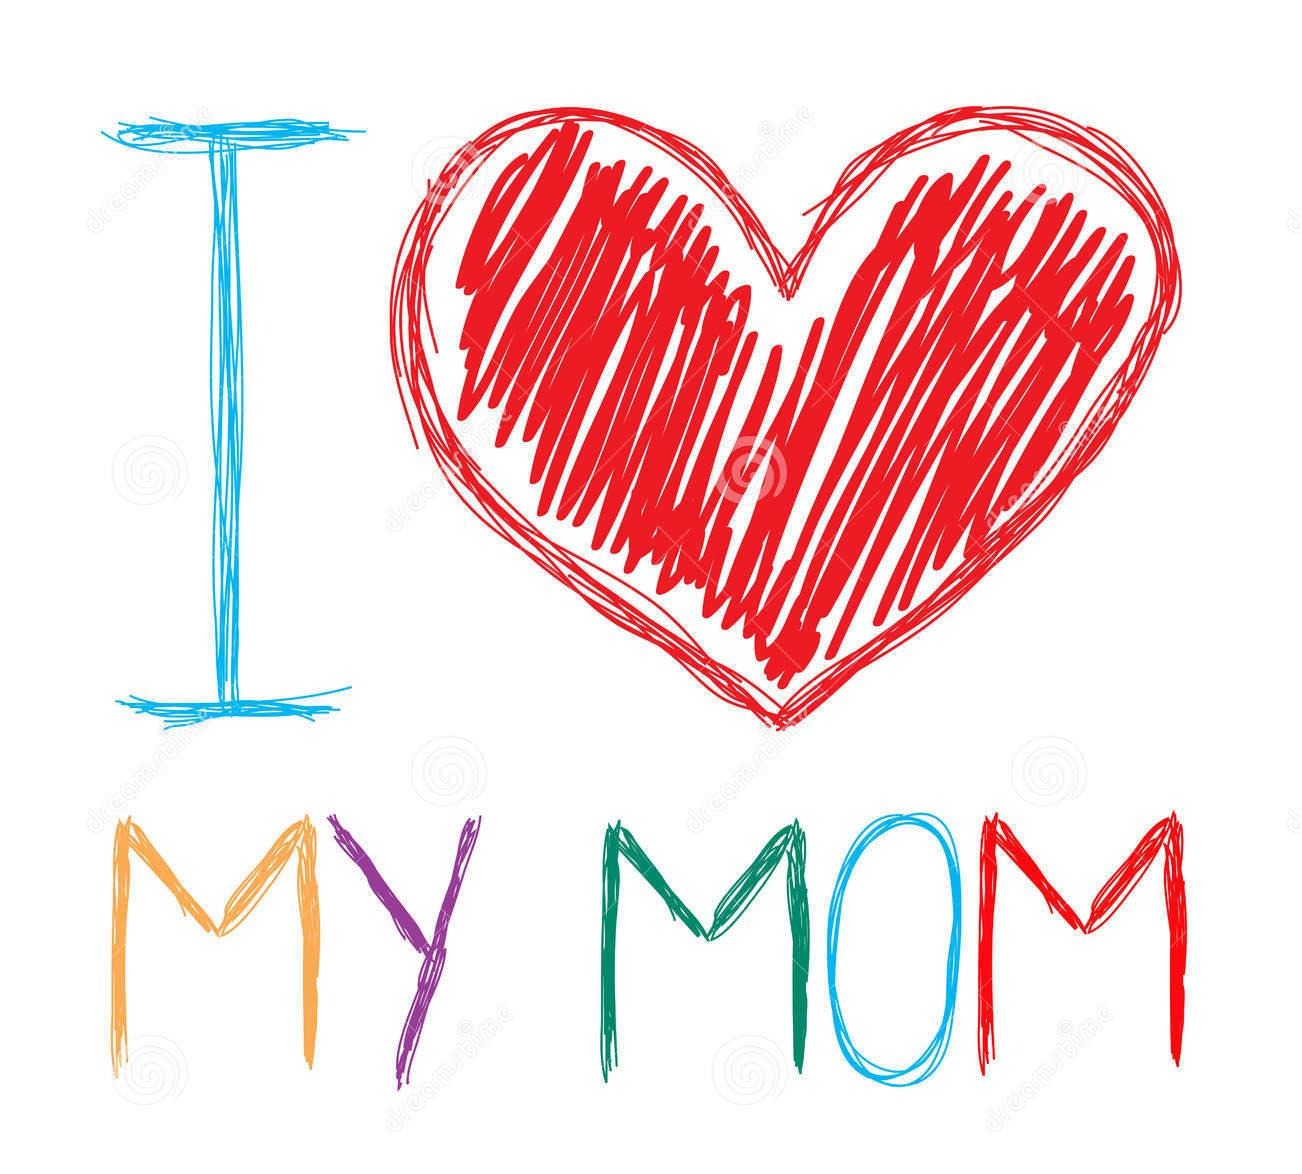 Essay on Mothers Day for school students